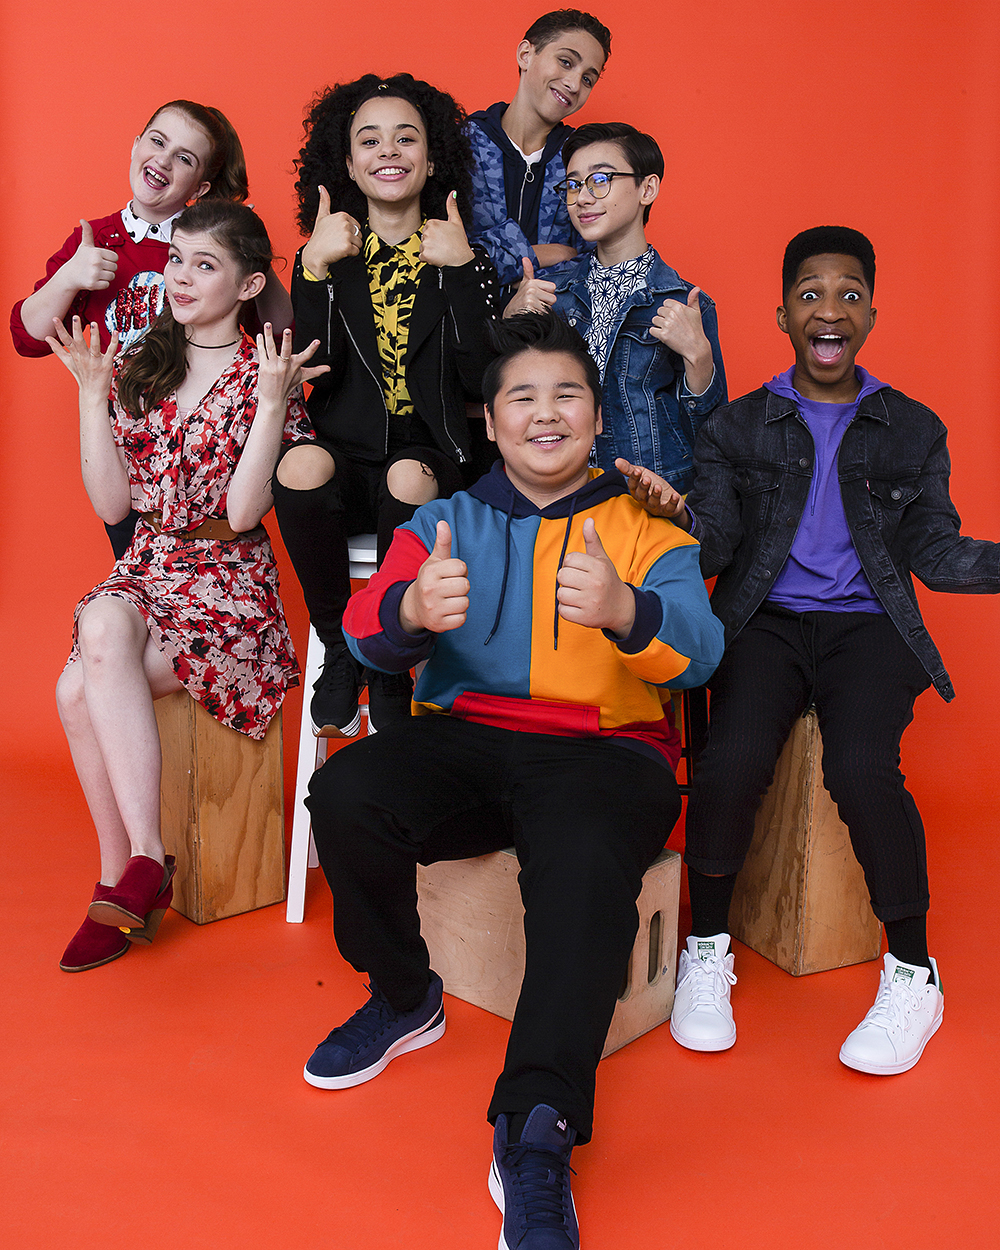 All That Reboot Nickelodeon Auditions : reboot, nickelodeon, auditions, NickALive!:, Masked, Video, Dancer, Celebrity, Edition, Feat., Cannon,, Beyonce,, Ariana, Grande, More!